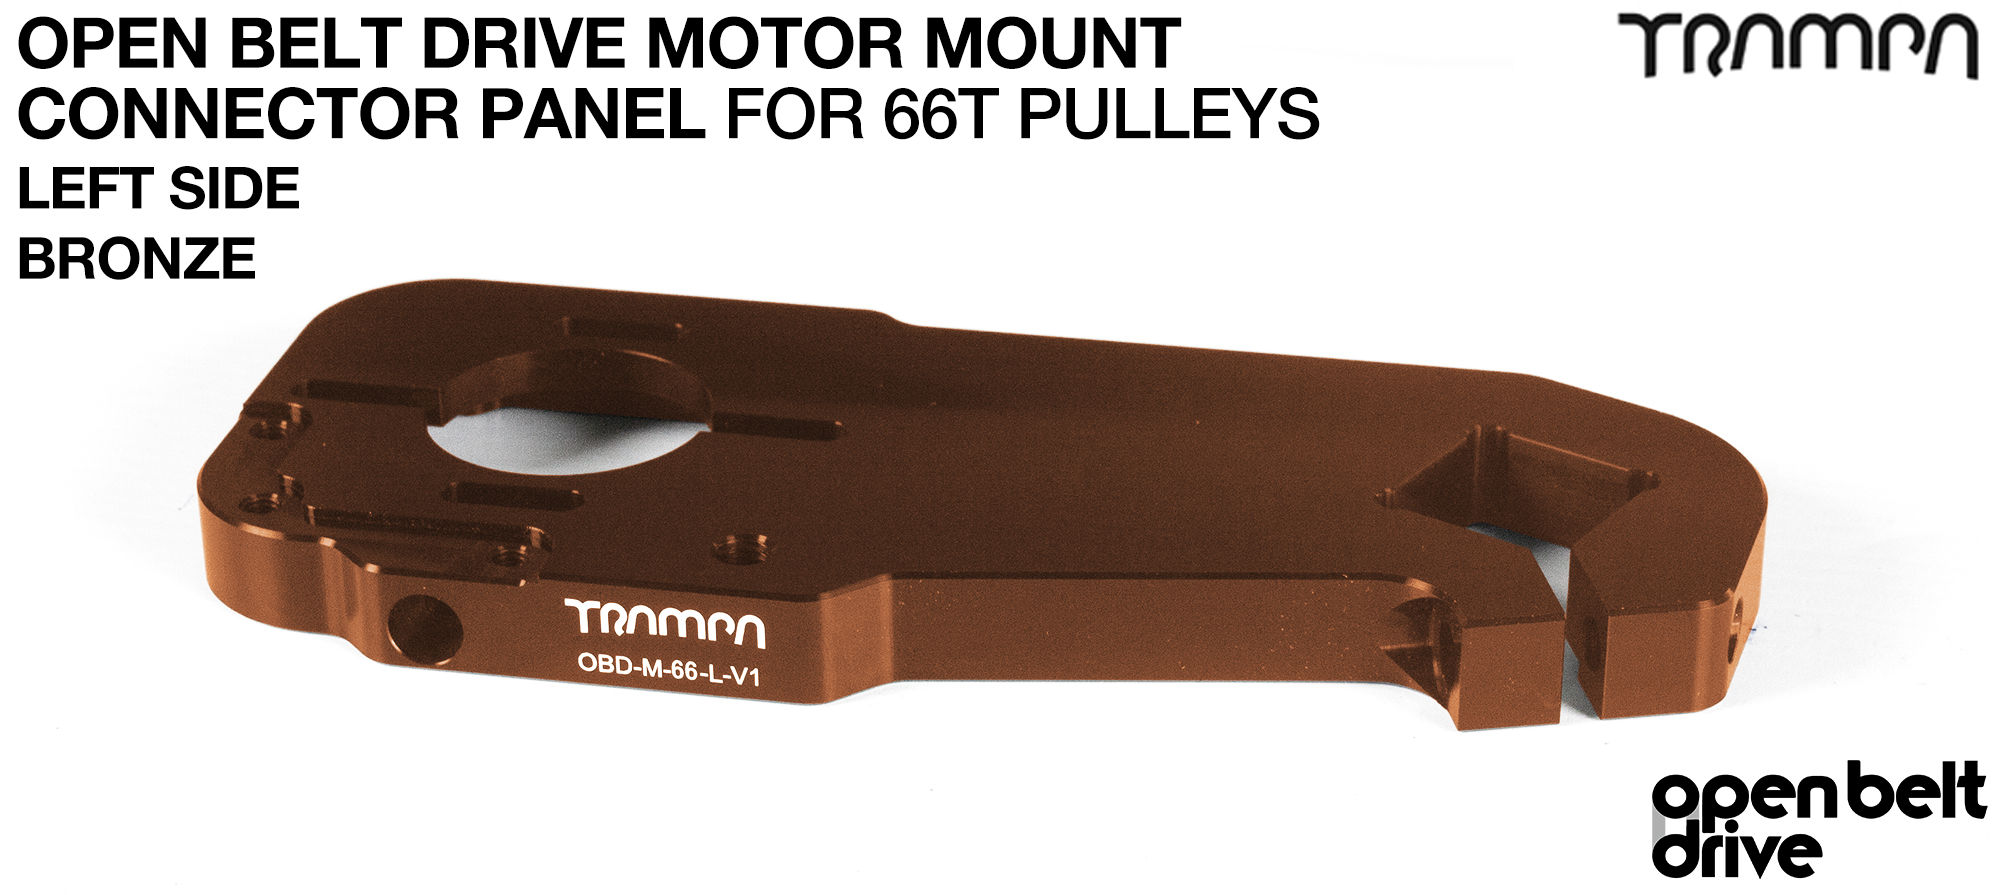 OBD Motor Mount Connector Panel for 66 tooth Pulleys - REGULAR - BRONZE